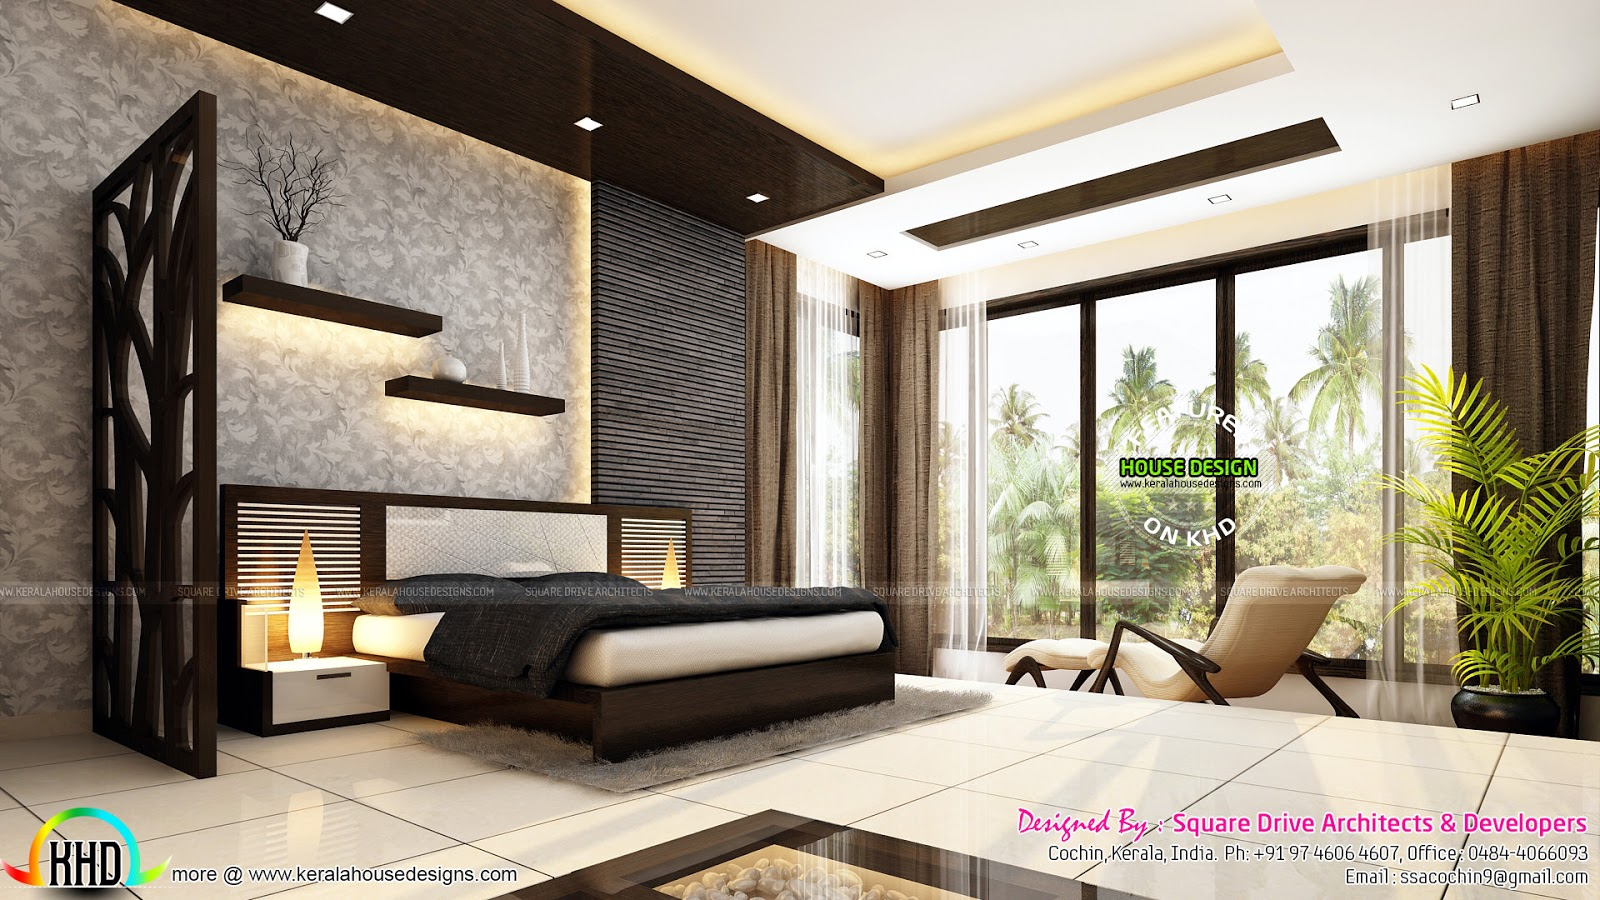 Very beautiful modern interior designs kerala home for Beautiful room design